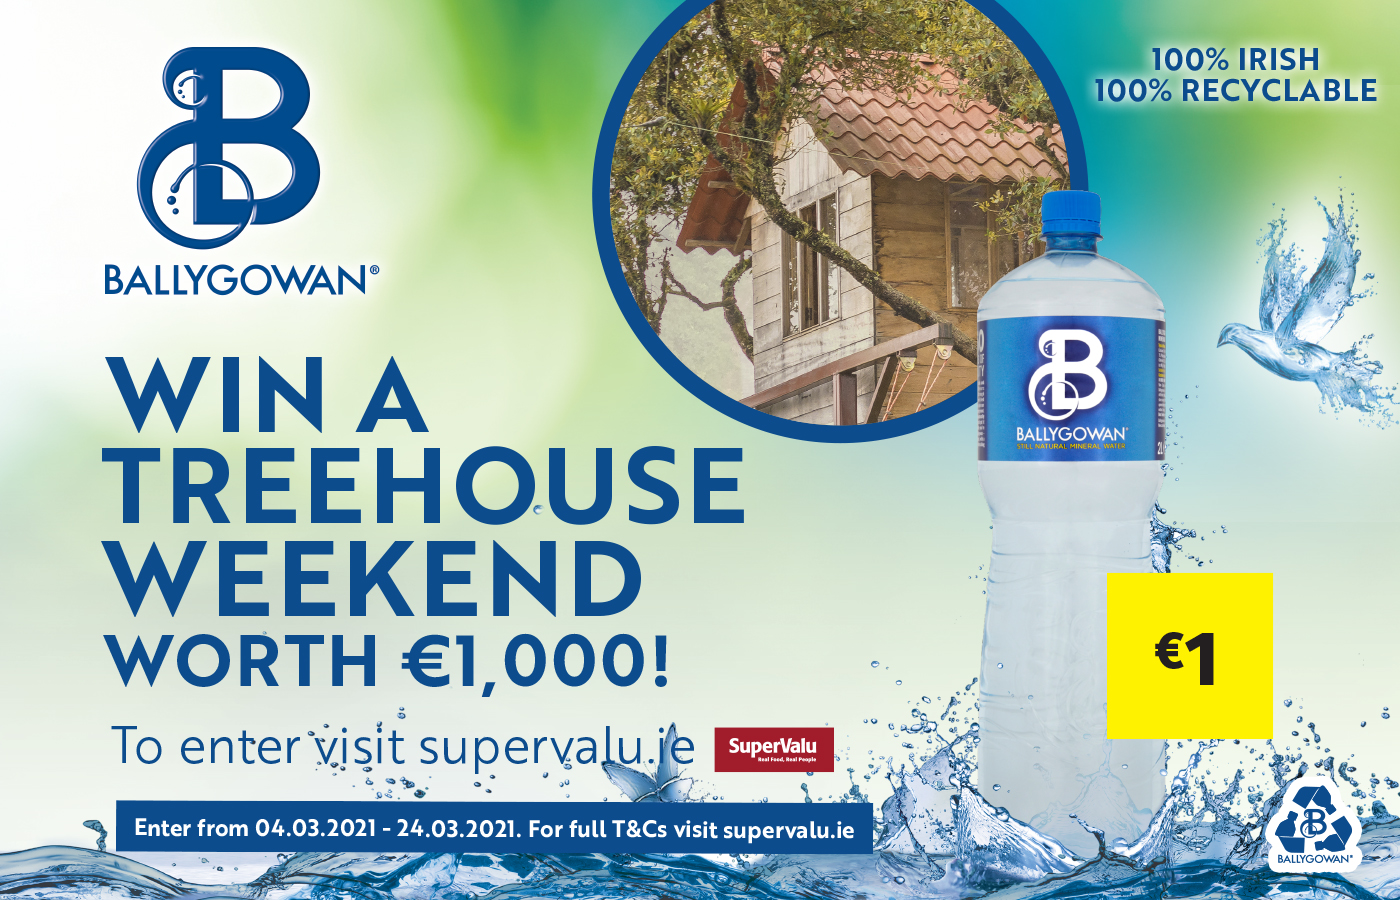 Win a Treehouse Weekend worth €1,000 with Ballygowan